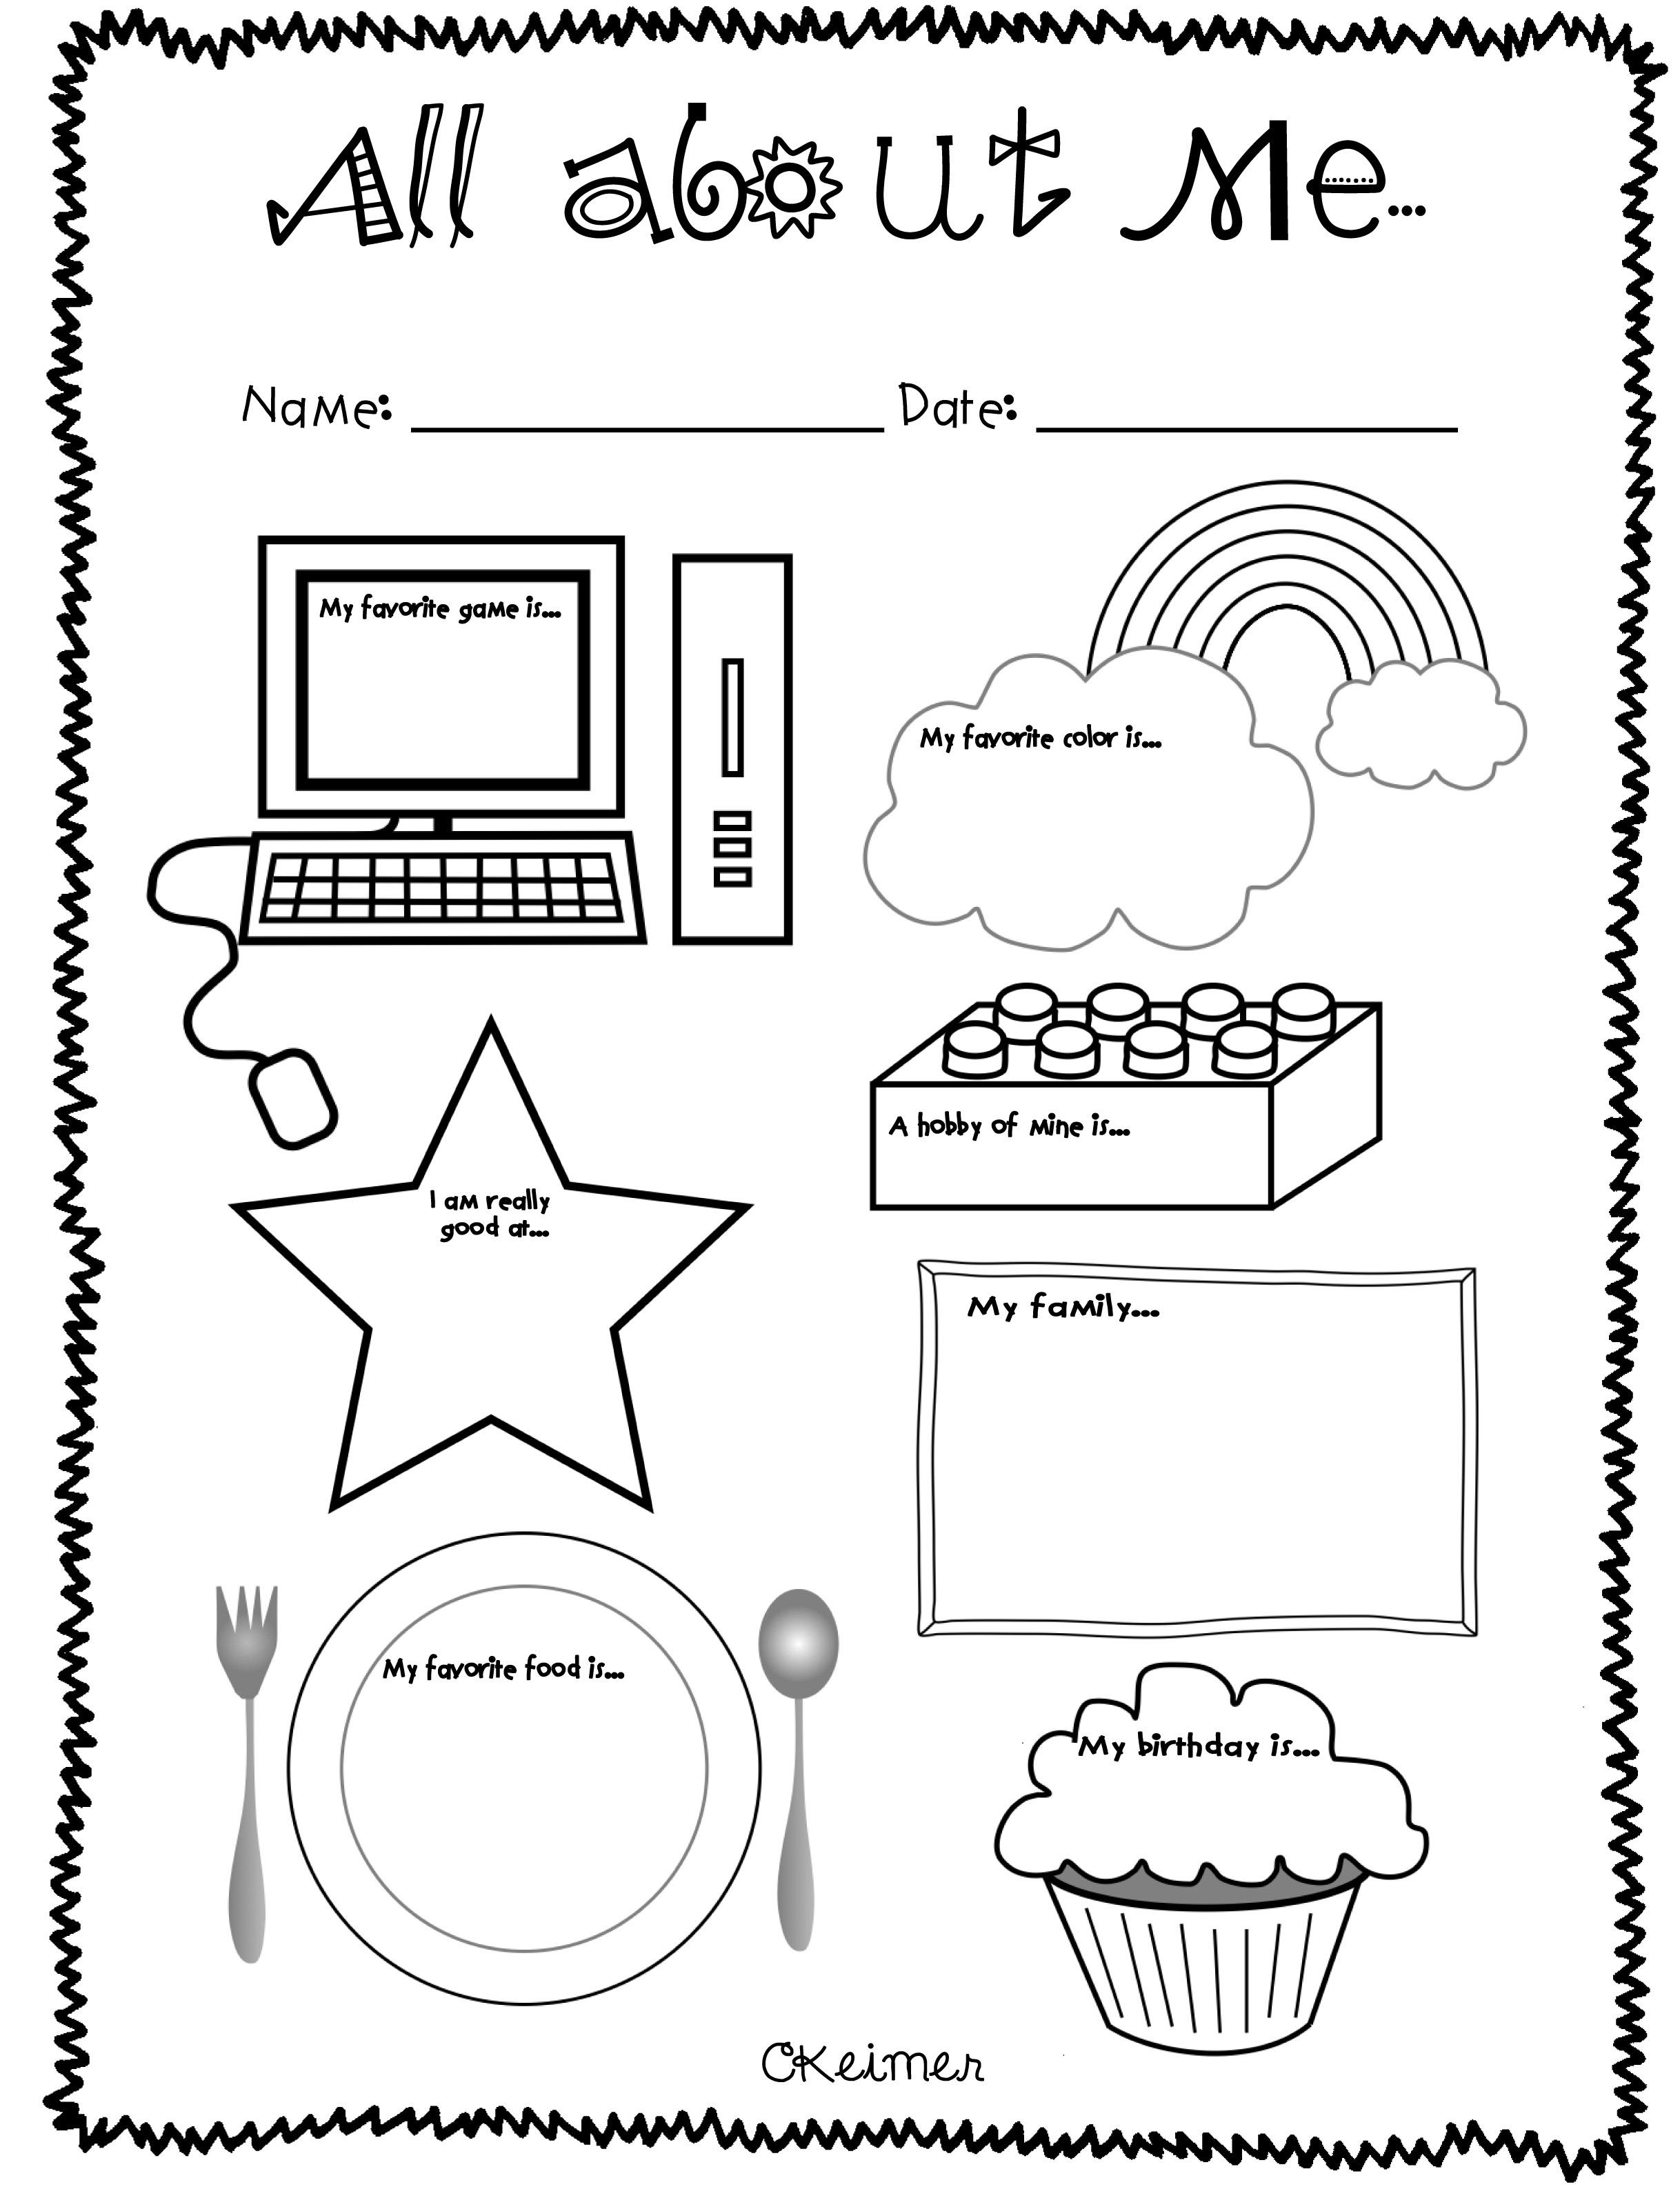 All About Me Activities A Multiple Intelligences Assessment